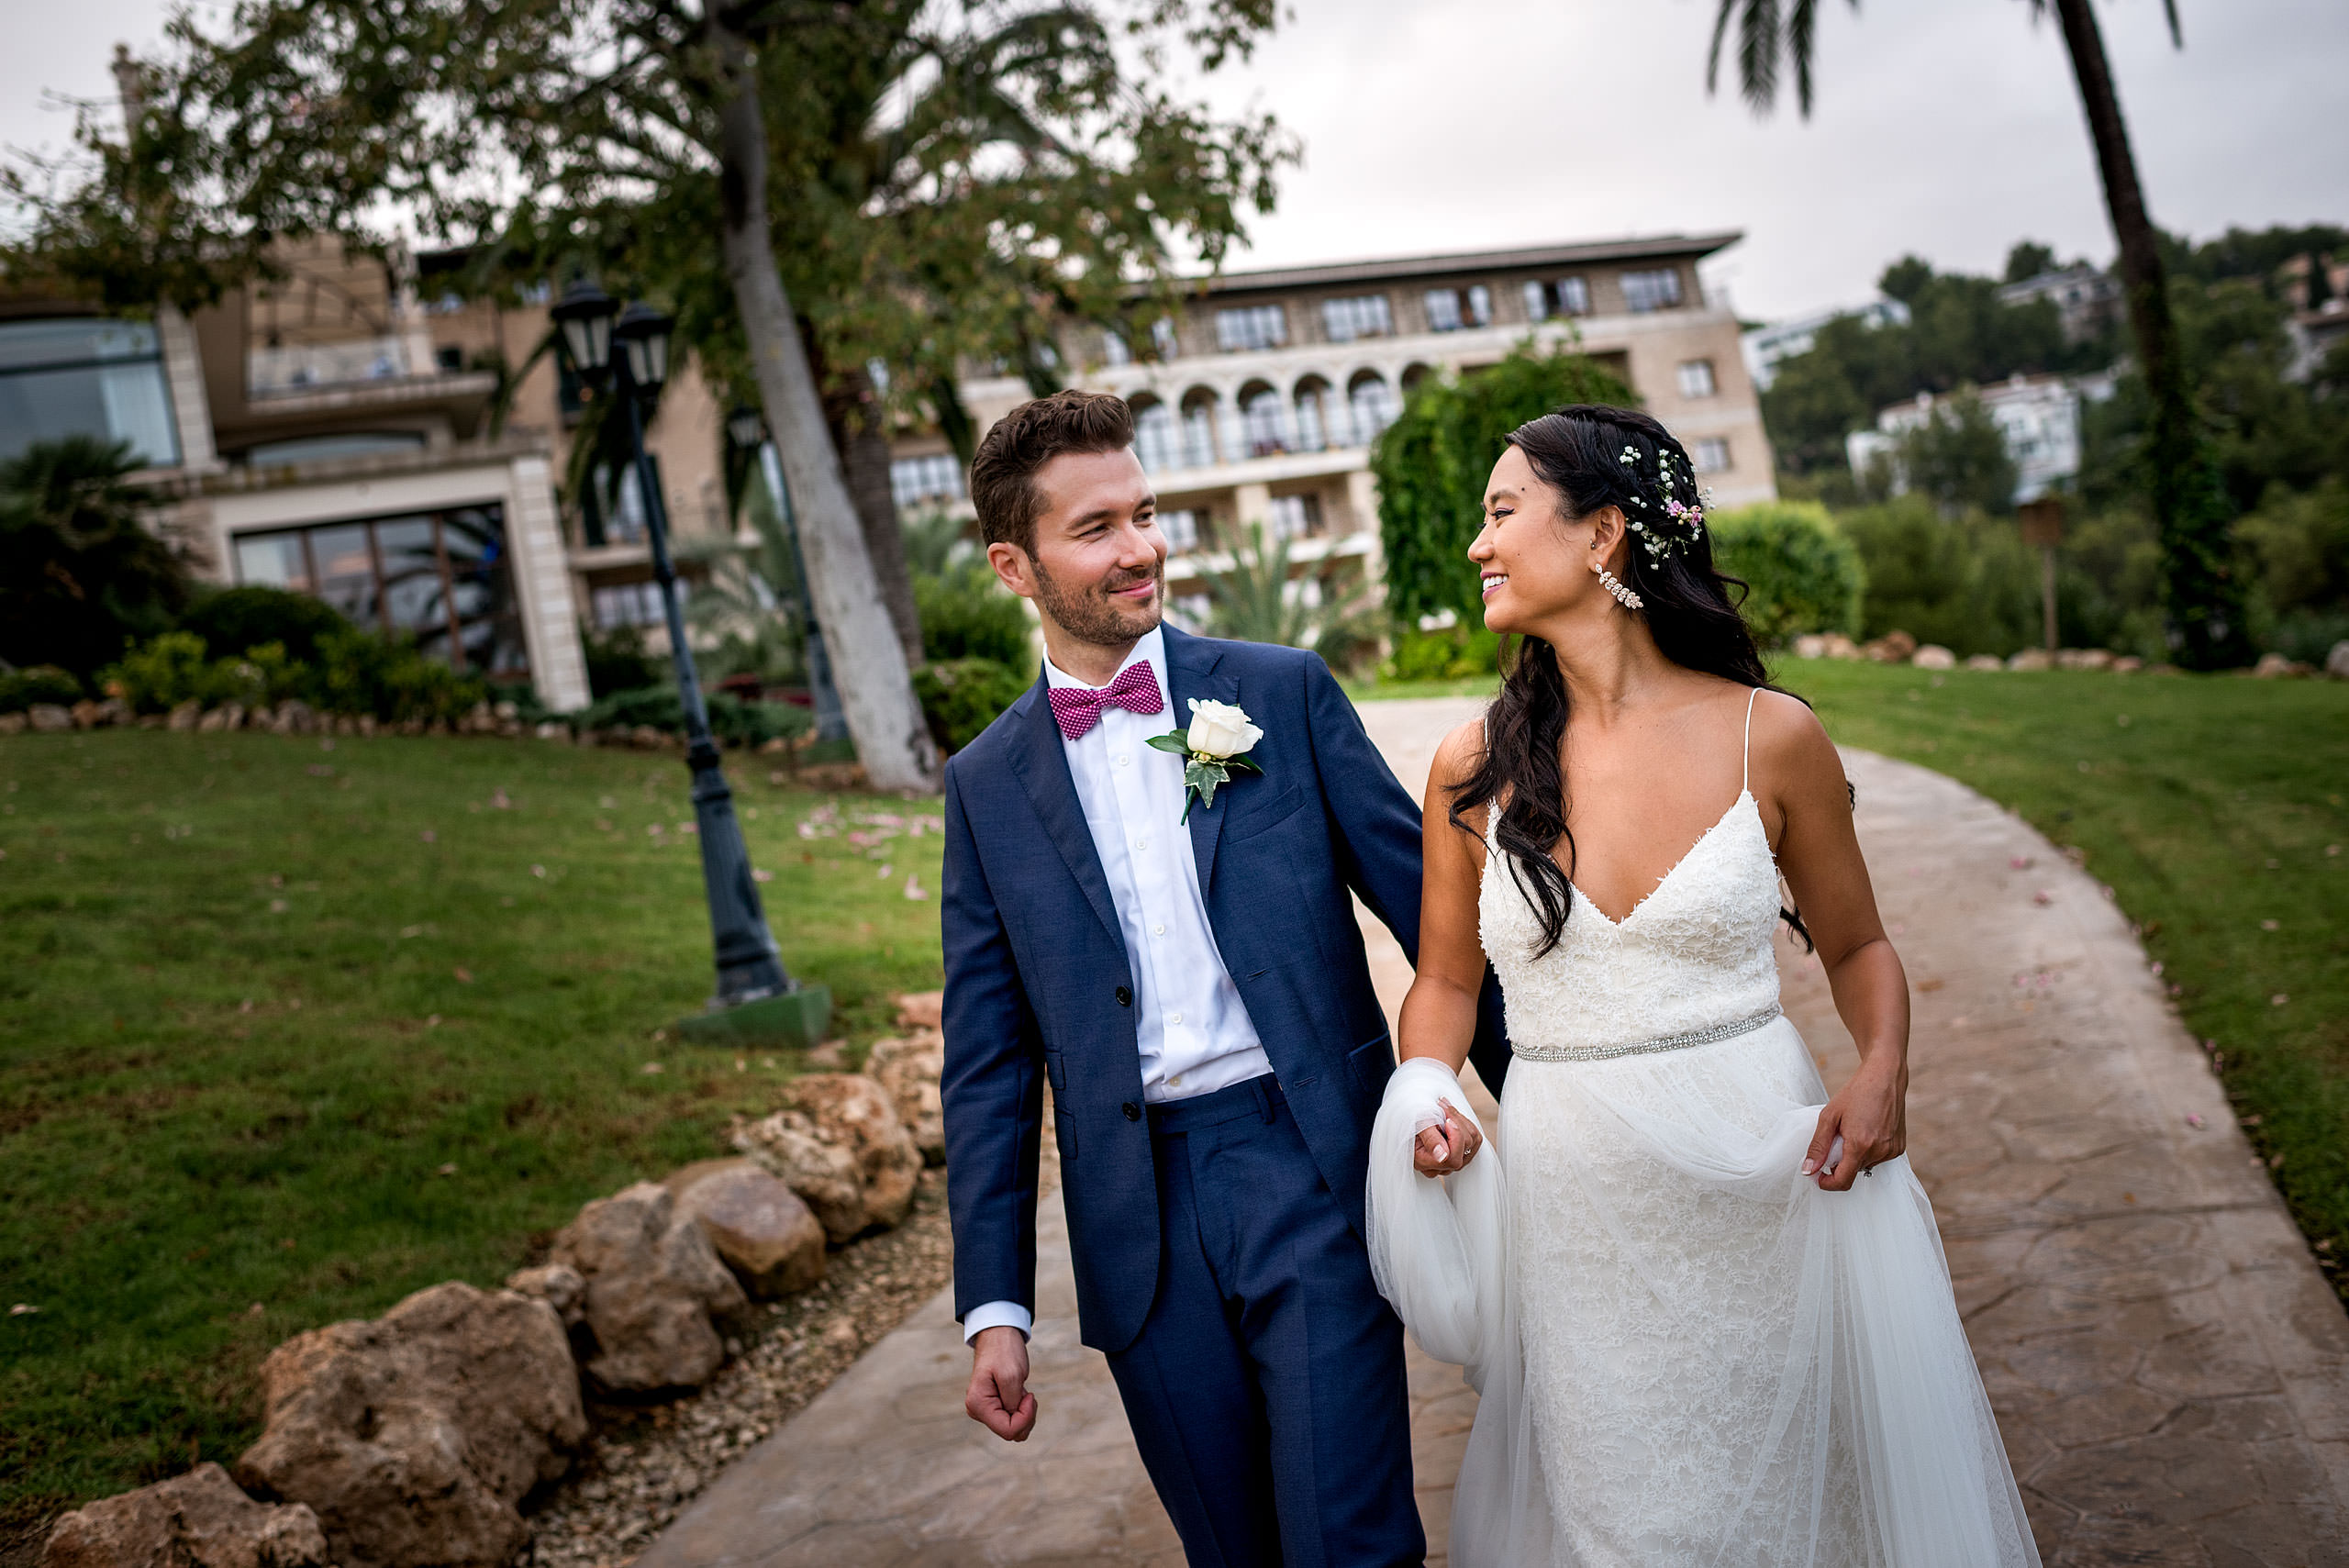 a bride and groom walking down a pathway with hotel in the background at castillo hotel son vida destination wedding by sean leblanc